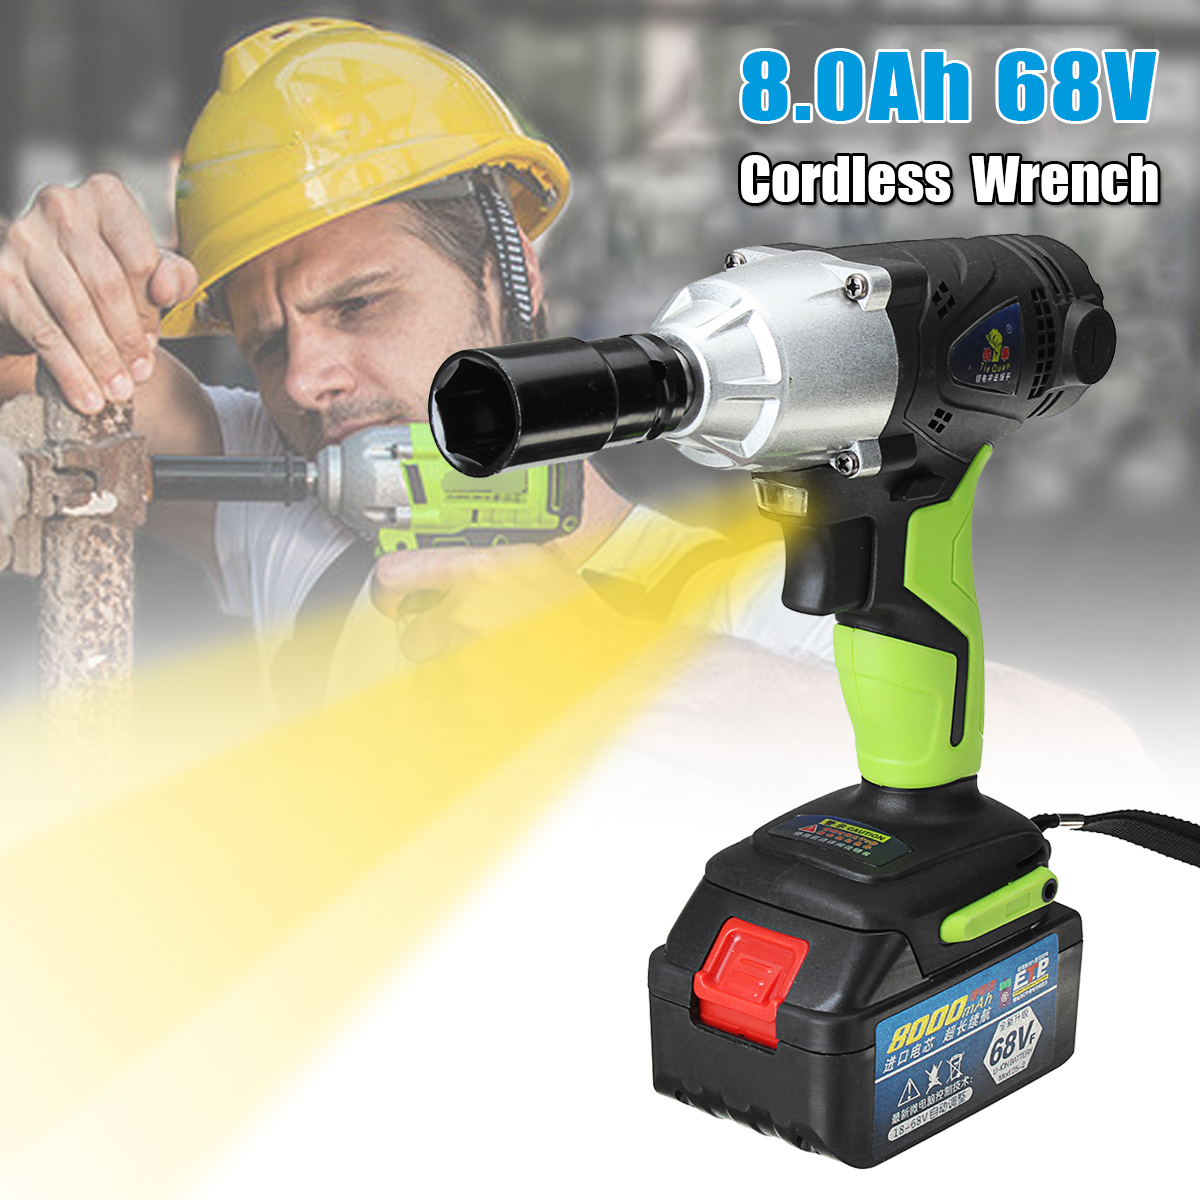 цены 68V 8000mAh Cordless Electric Wrench 420Nm 1/2'' Chuck with 1 Batteries 1 Charger Rechargeable Electric Wrench Power Tools